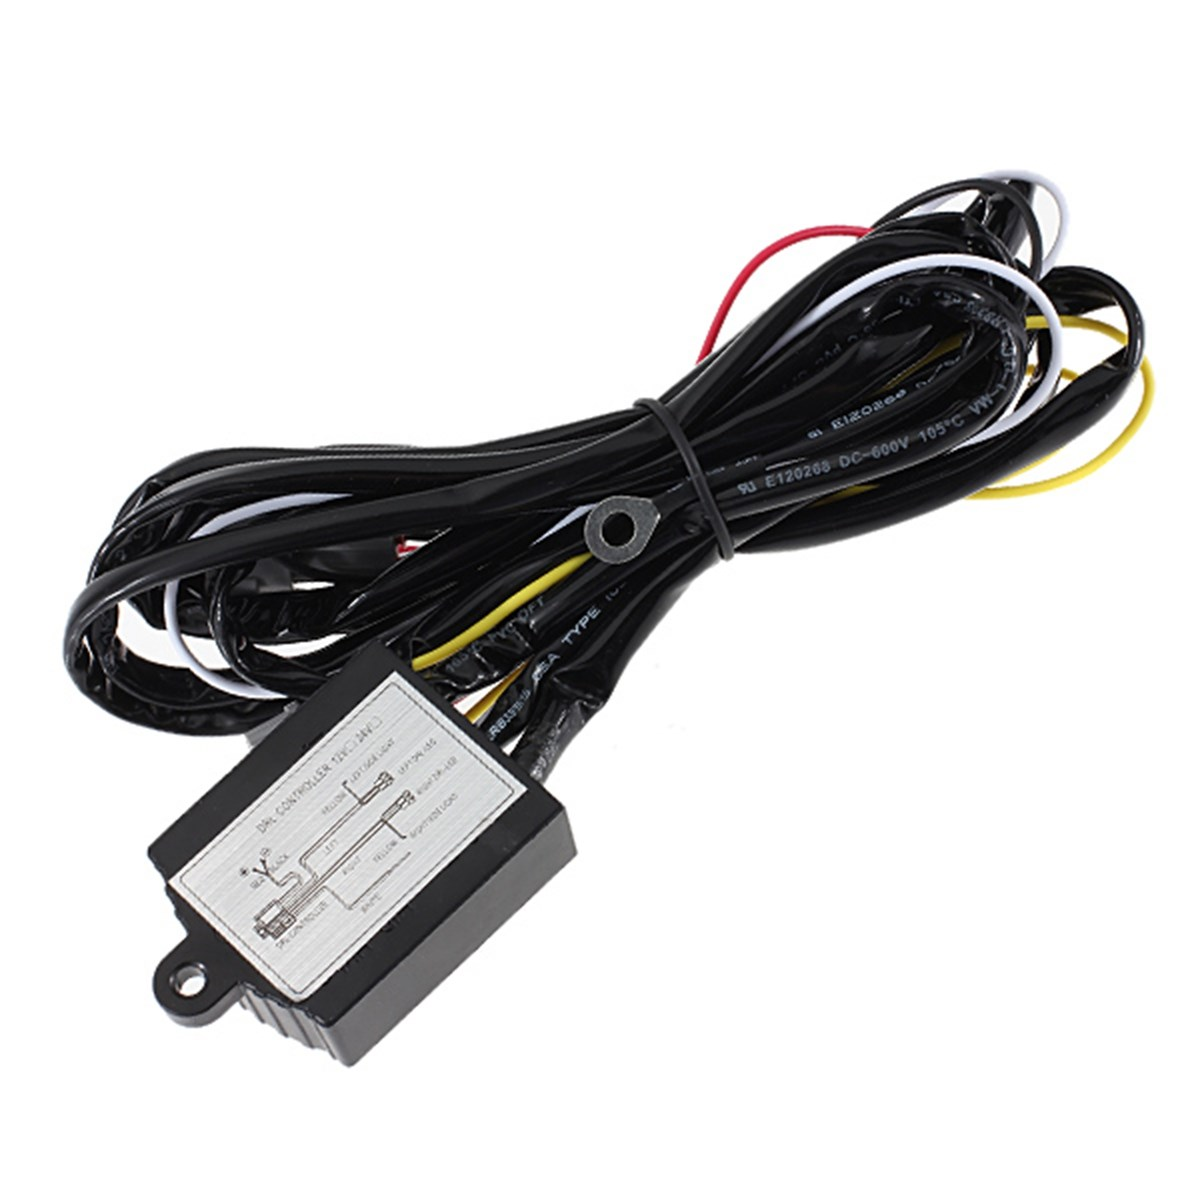 Drl Led Daytime Running Light Relay Harness Automatic On Off Control Automotive Ignition Switches Wiring Harnesses And Controllers Switch 12v Warning Lights In Car Relays From Automobiles Motorcycles